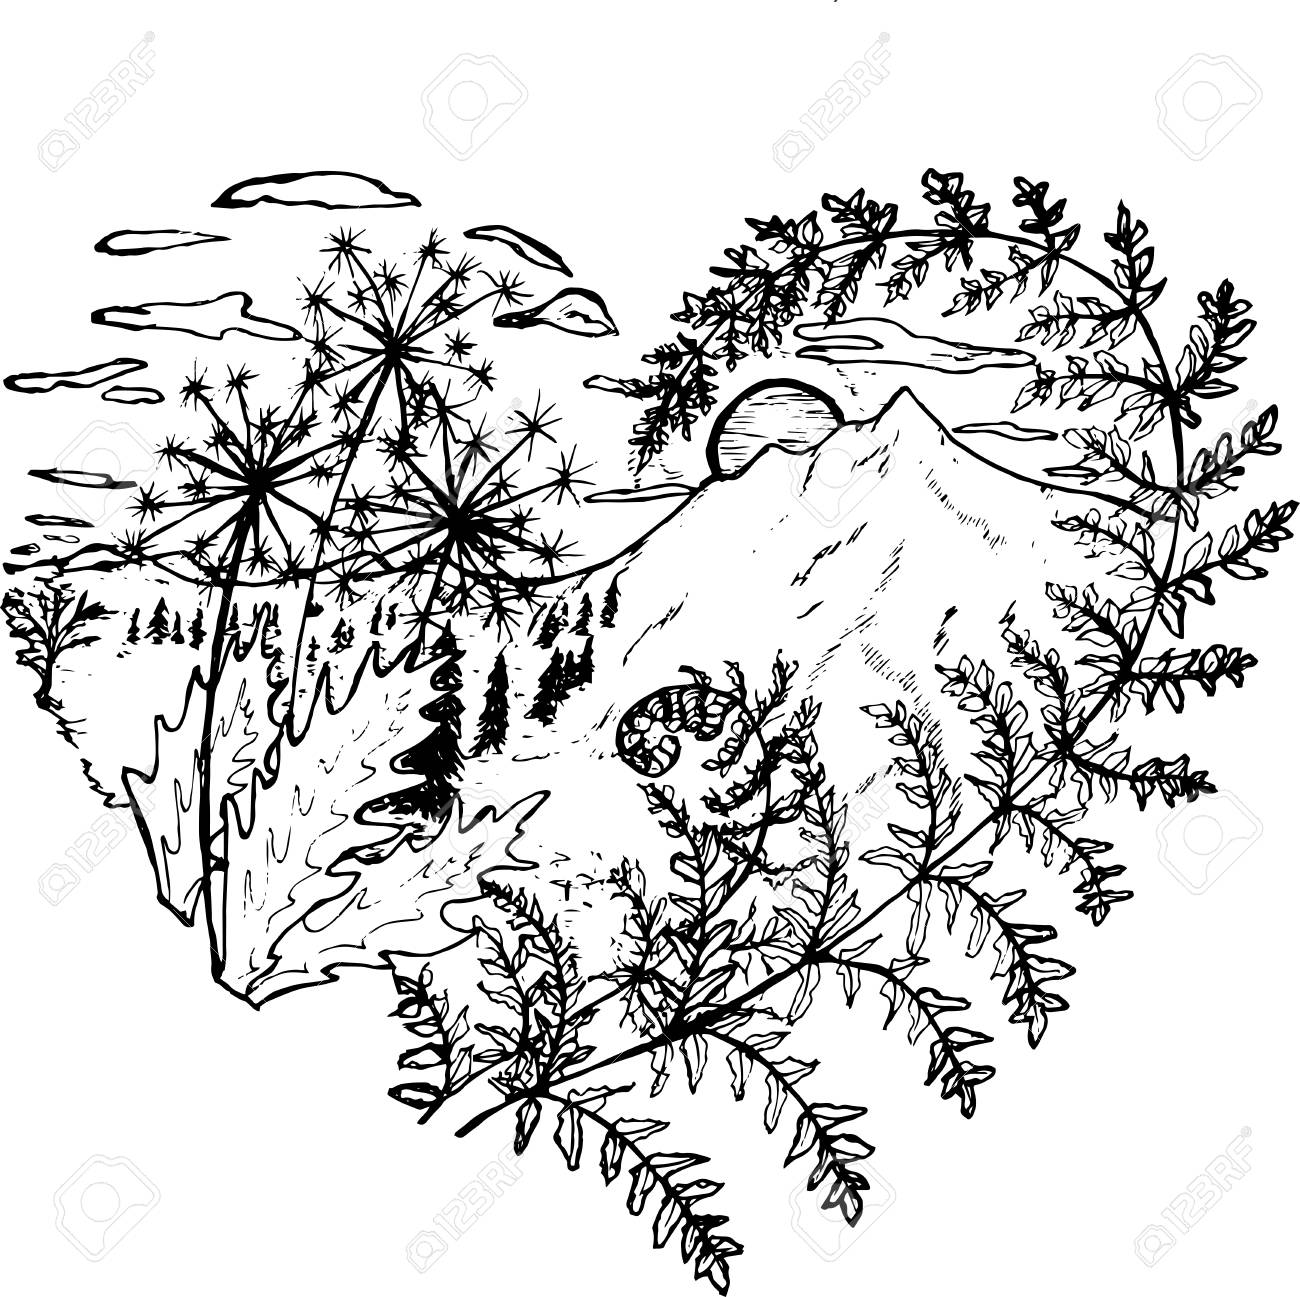 1300x1297 Black And White Drawing Of The Heart, In Which Dandelions, Fern